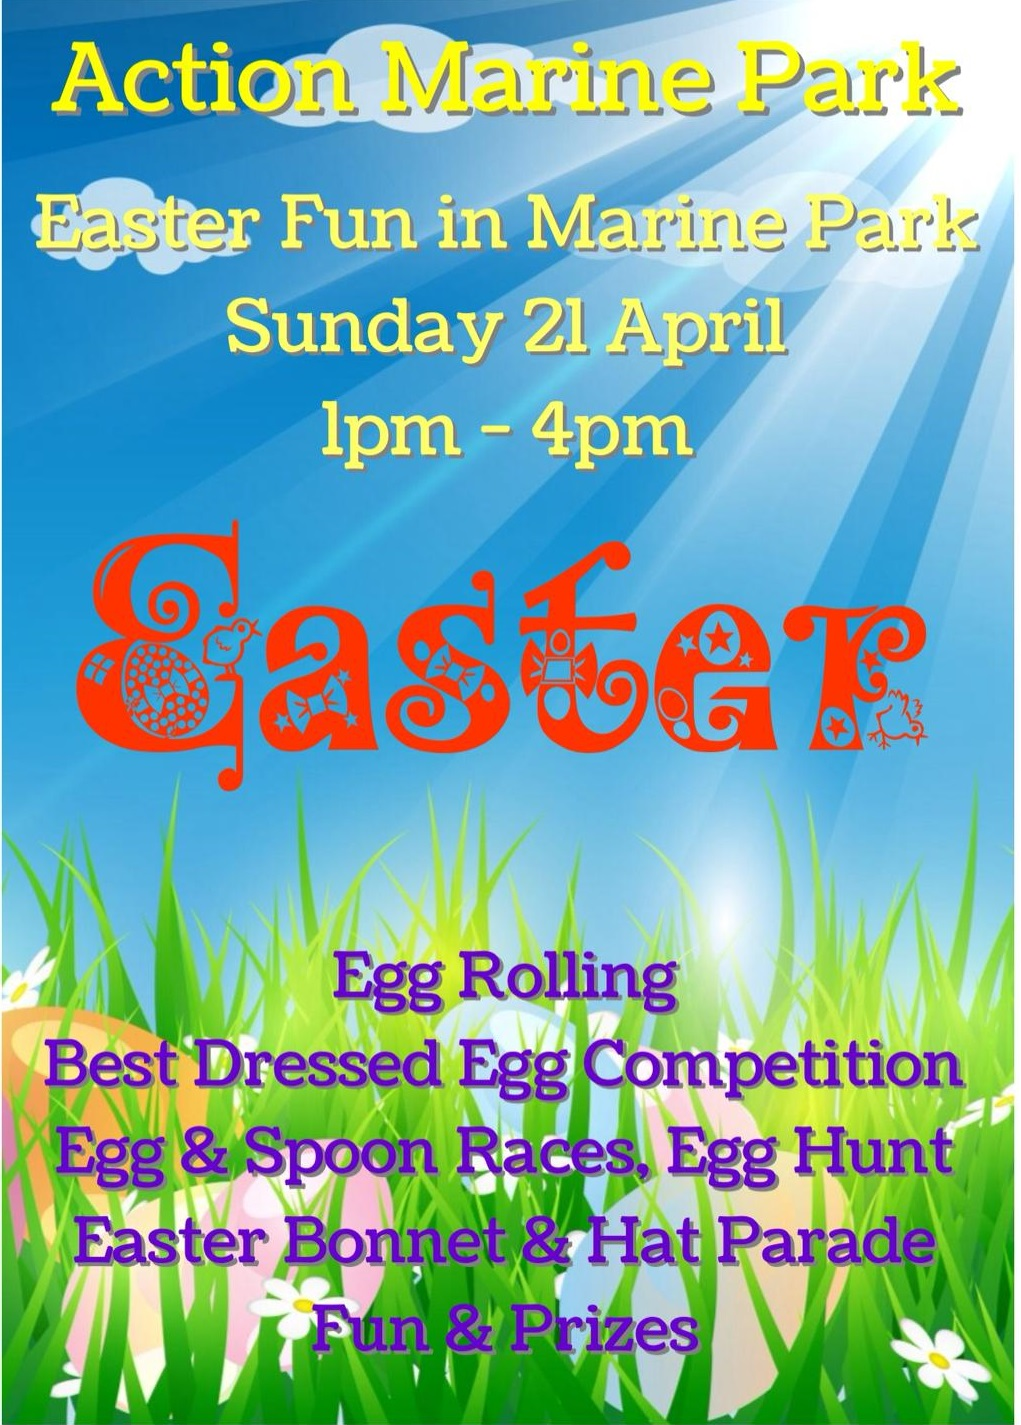 easter fun at marine park